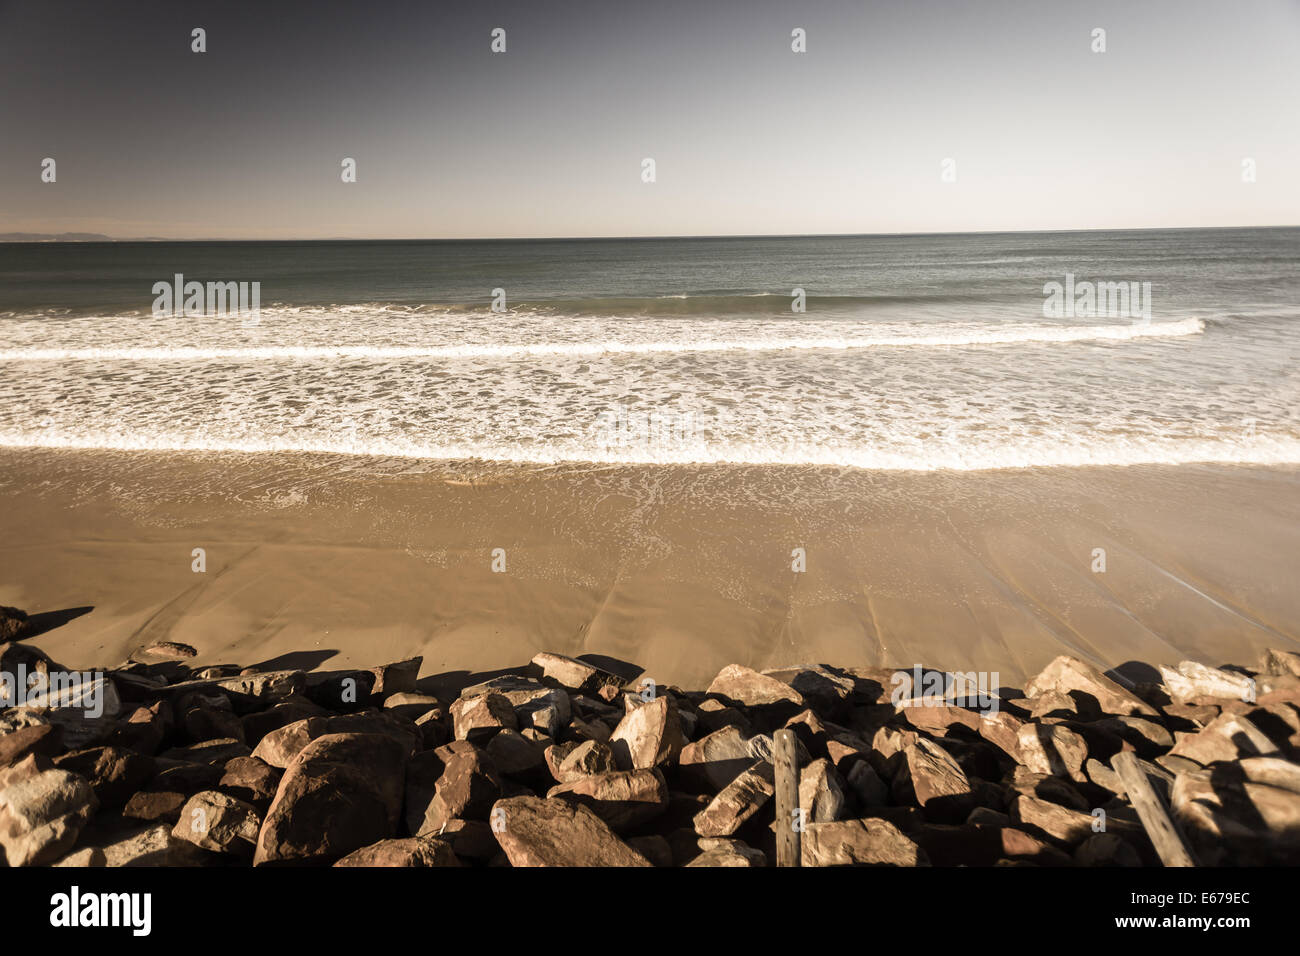 Beach sands into ocean water waves with distant ocean horizon in sepia vintage landscape contrast - Stock Image